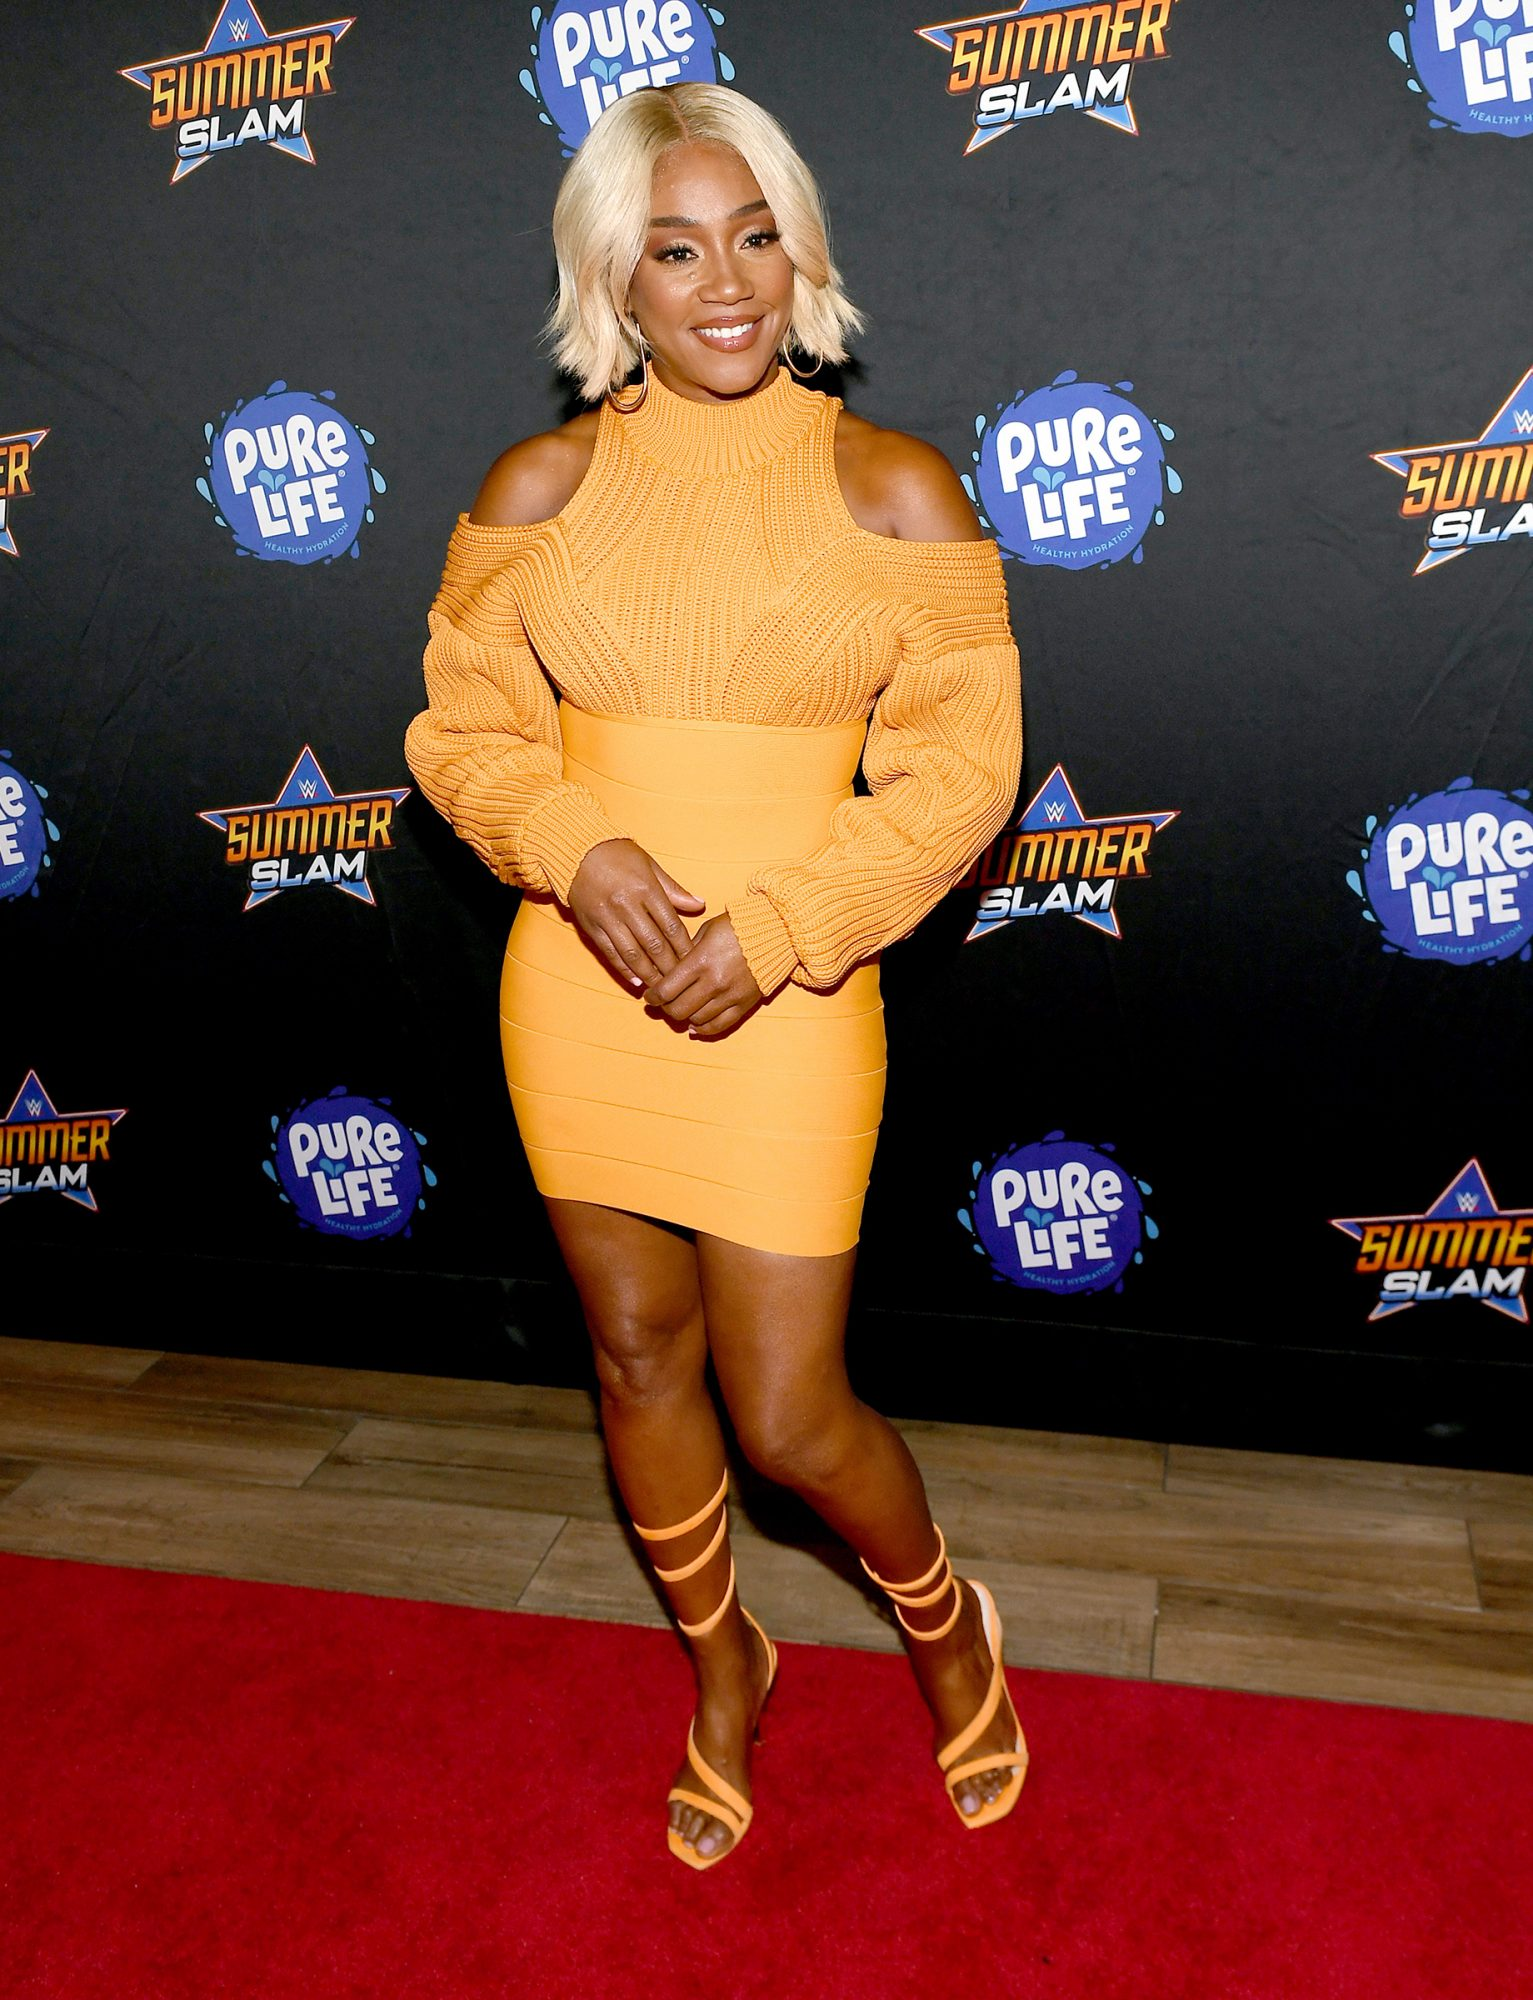 Tiffany Haddish attends the WWE SummerSlam after party at Delano Las Vegas at Mandalay Bay Resort and Casino on August 21, 2021 in Las Vegas, Nevada